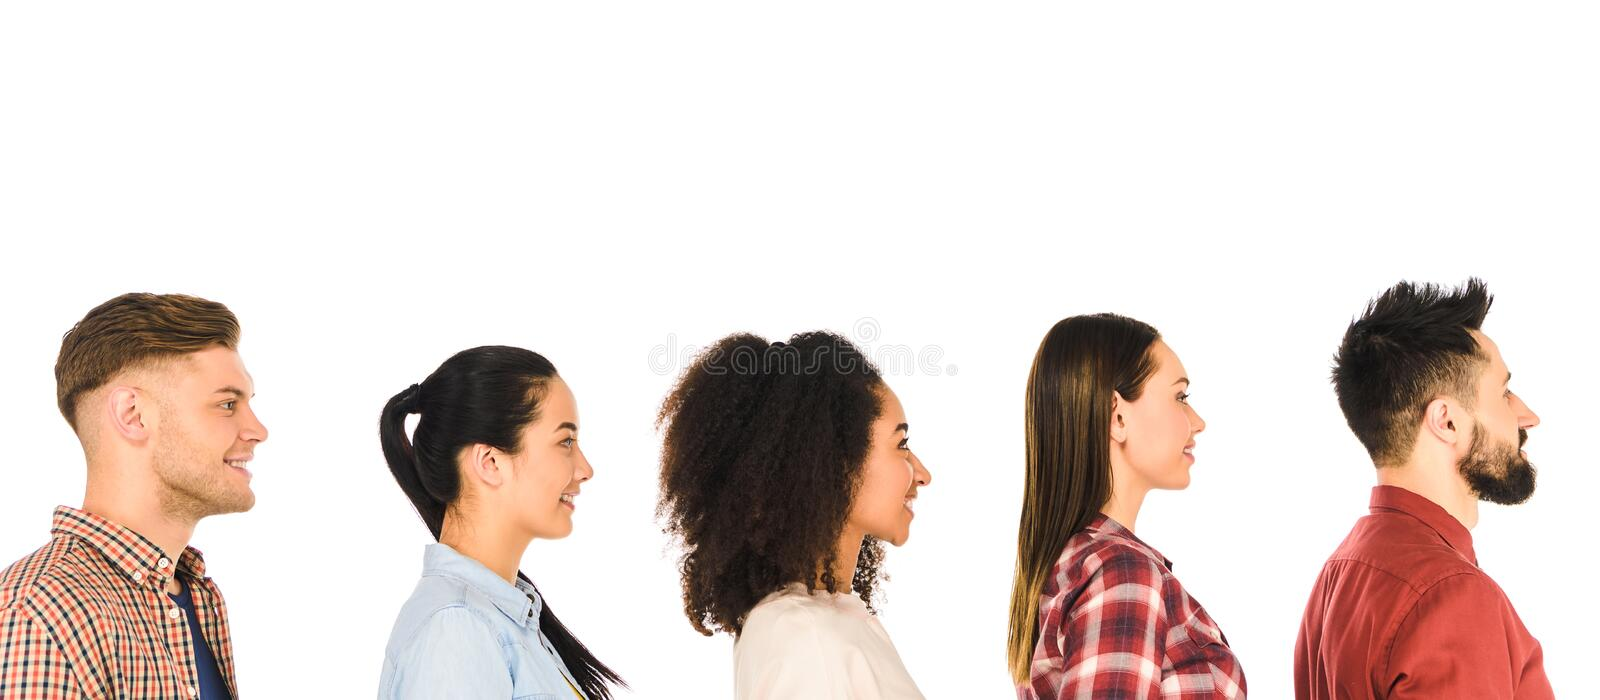 profile of smiling milticultural group of people isolated stock photos